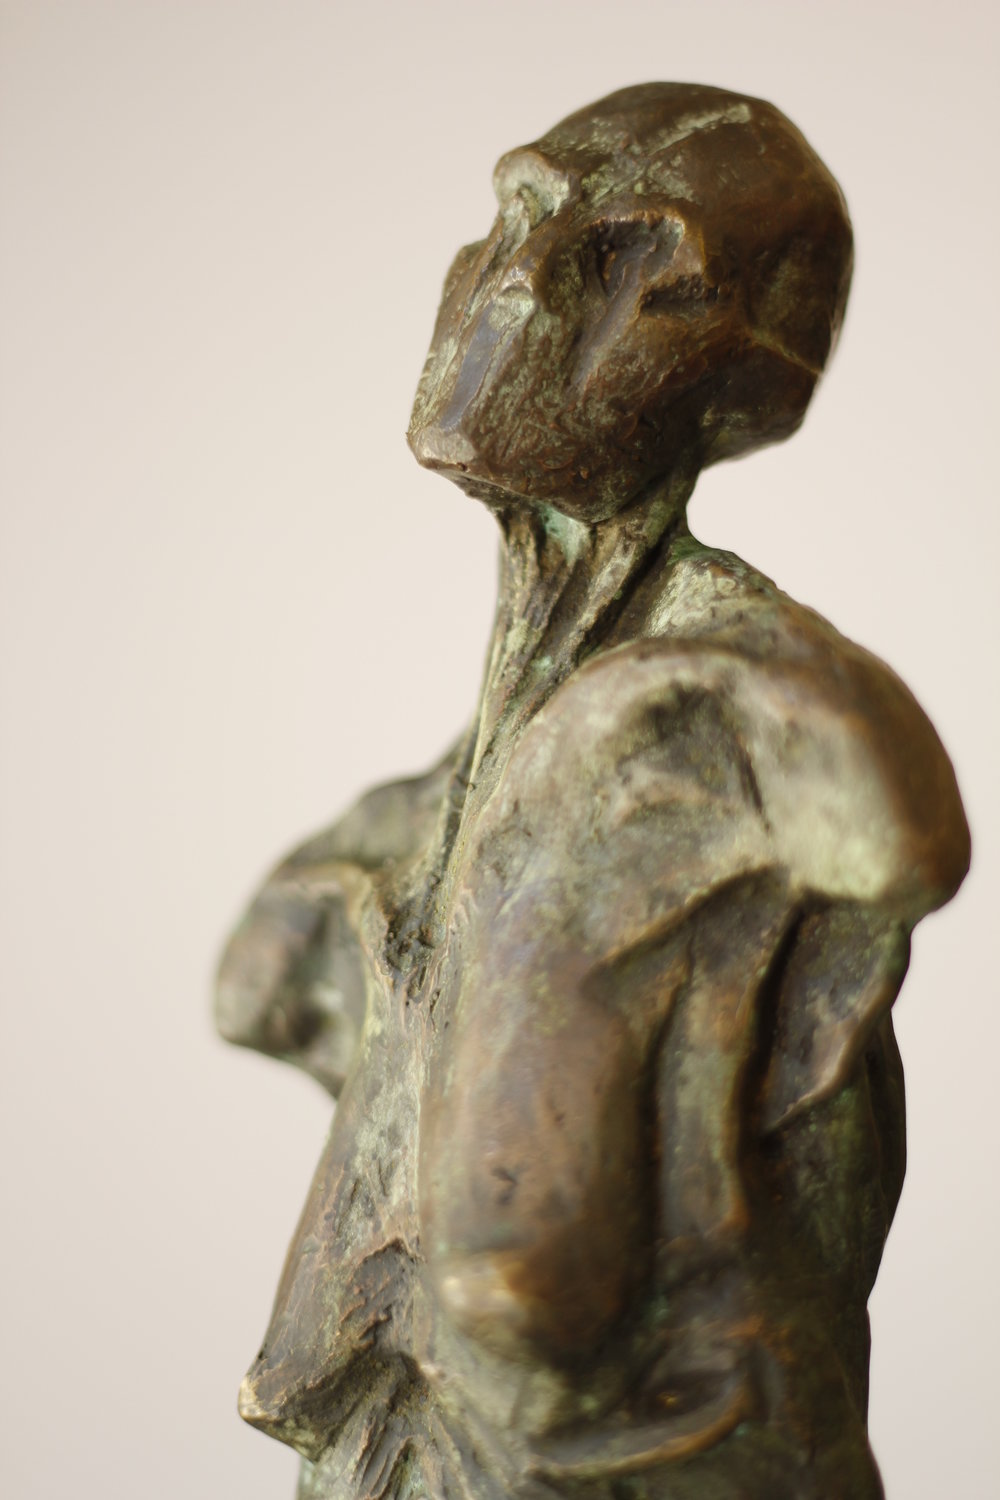 Untitled 2014, 80X20X10, Bronze statue by Mwafak Maklad (from Sweida born in 1988). Photo courtesy of ARA.